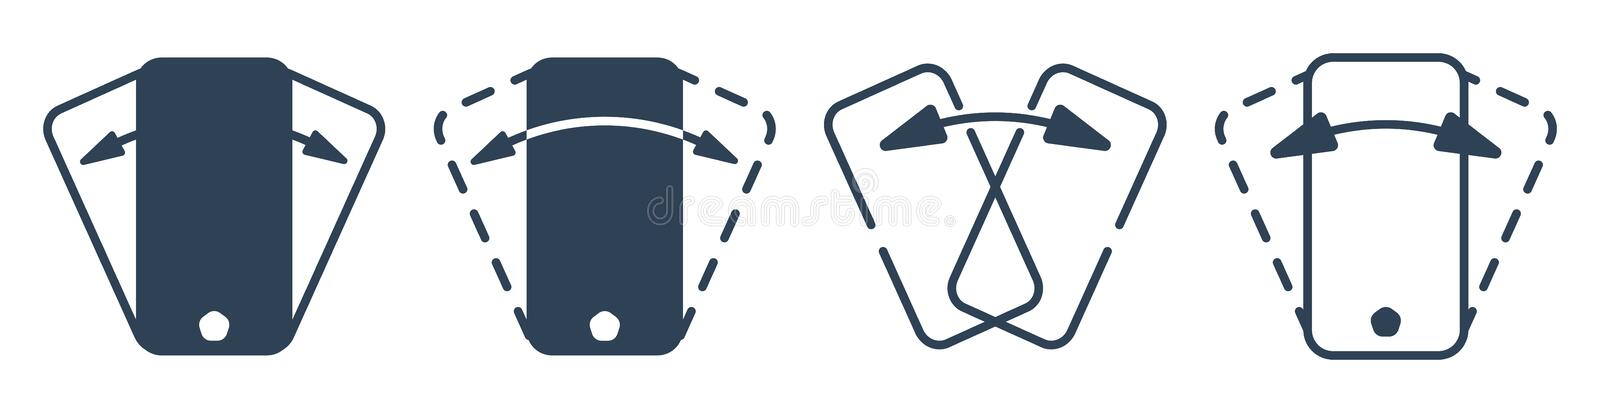 Smartphone shaking outline vector icon set royalty free illustration